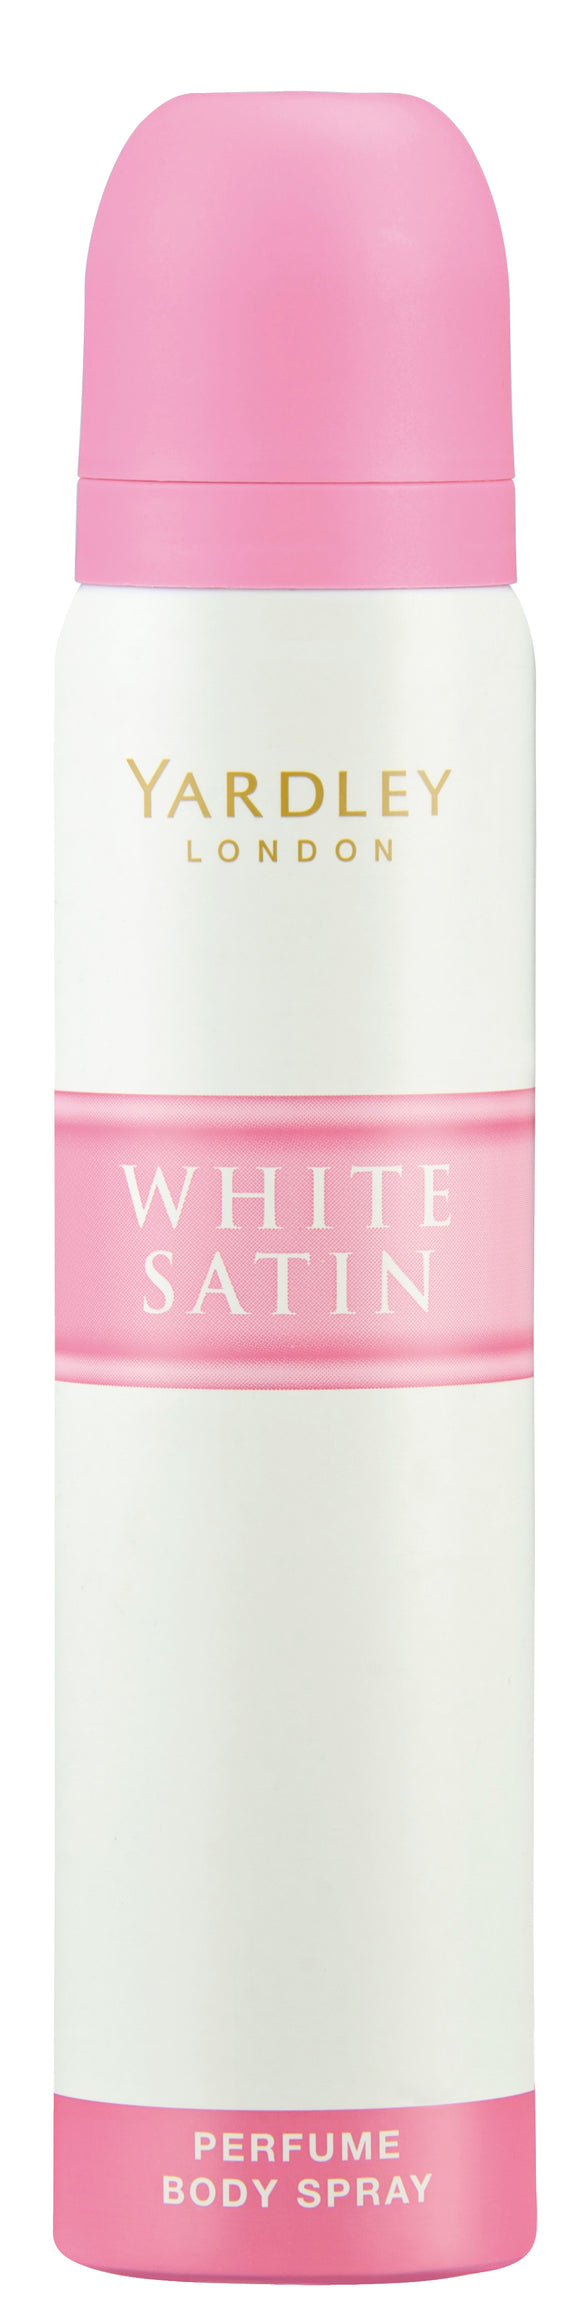 Yardley White Satin Perfume Body Spray 90ML